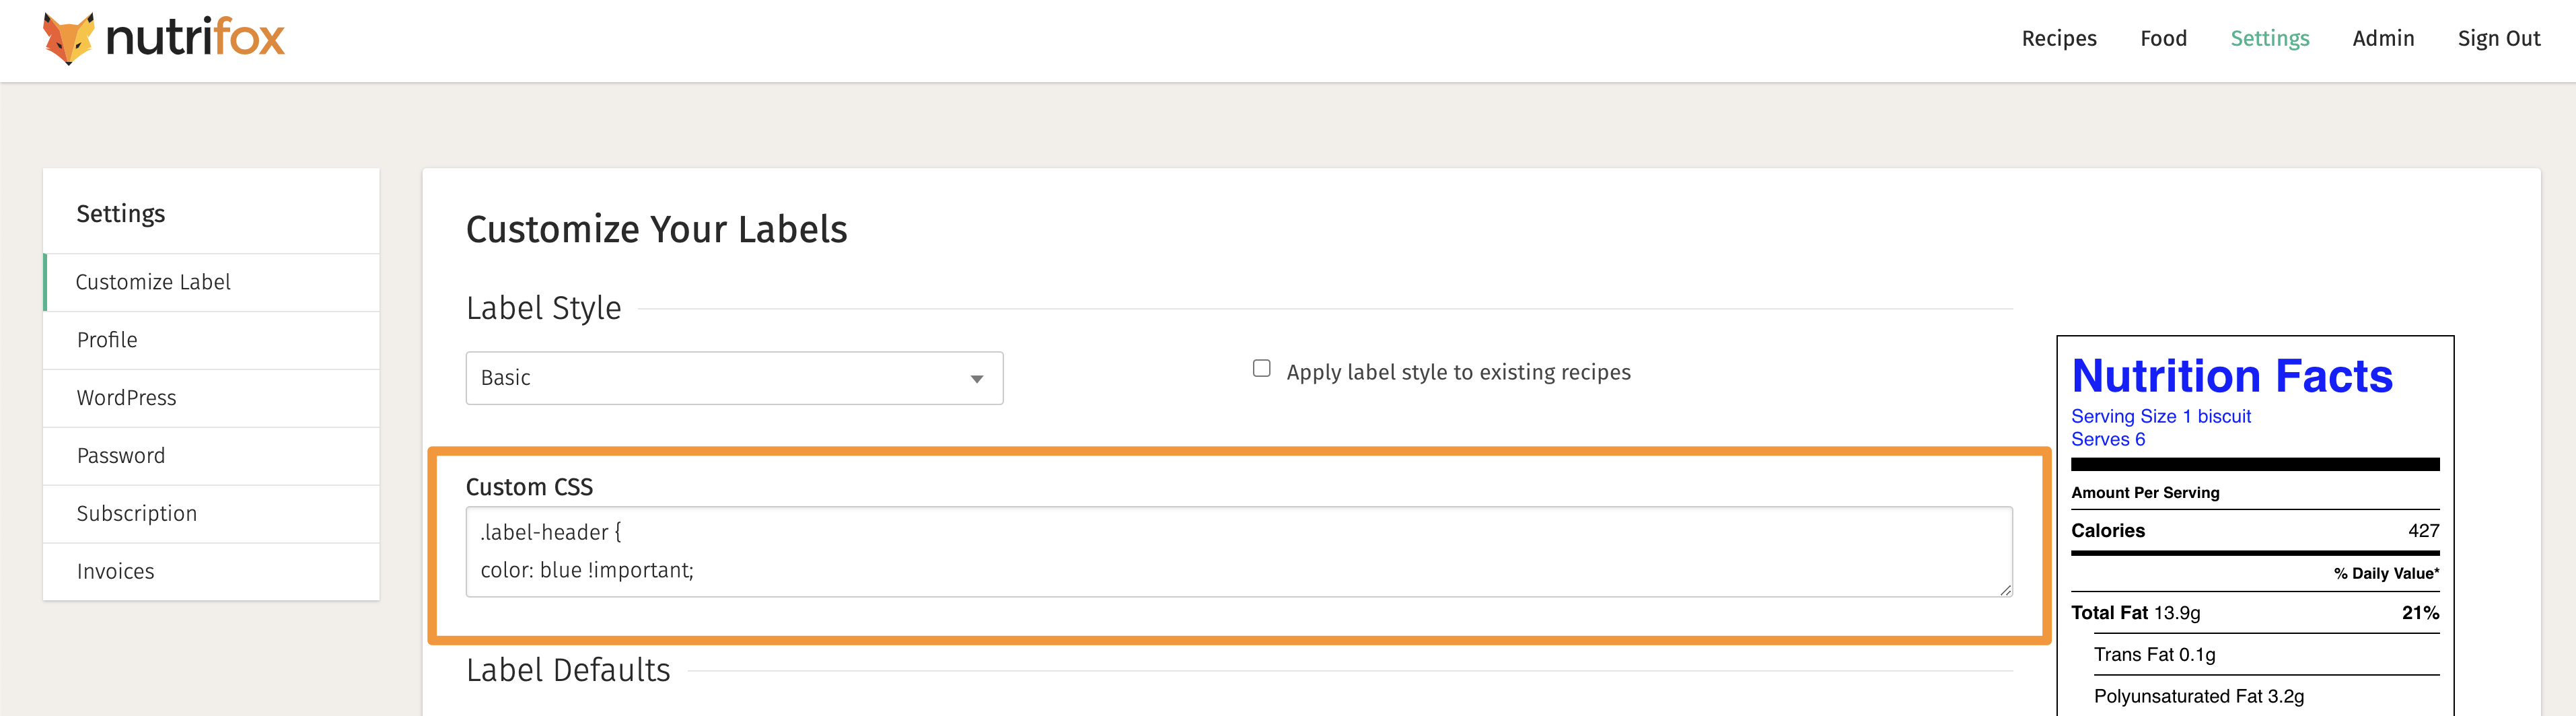 A screenshot of the Nutrifox settings page with an orange square around the Custom CSS area